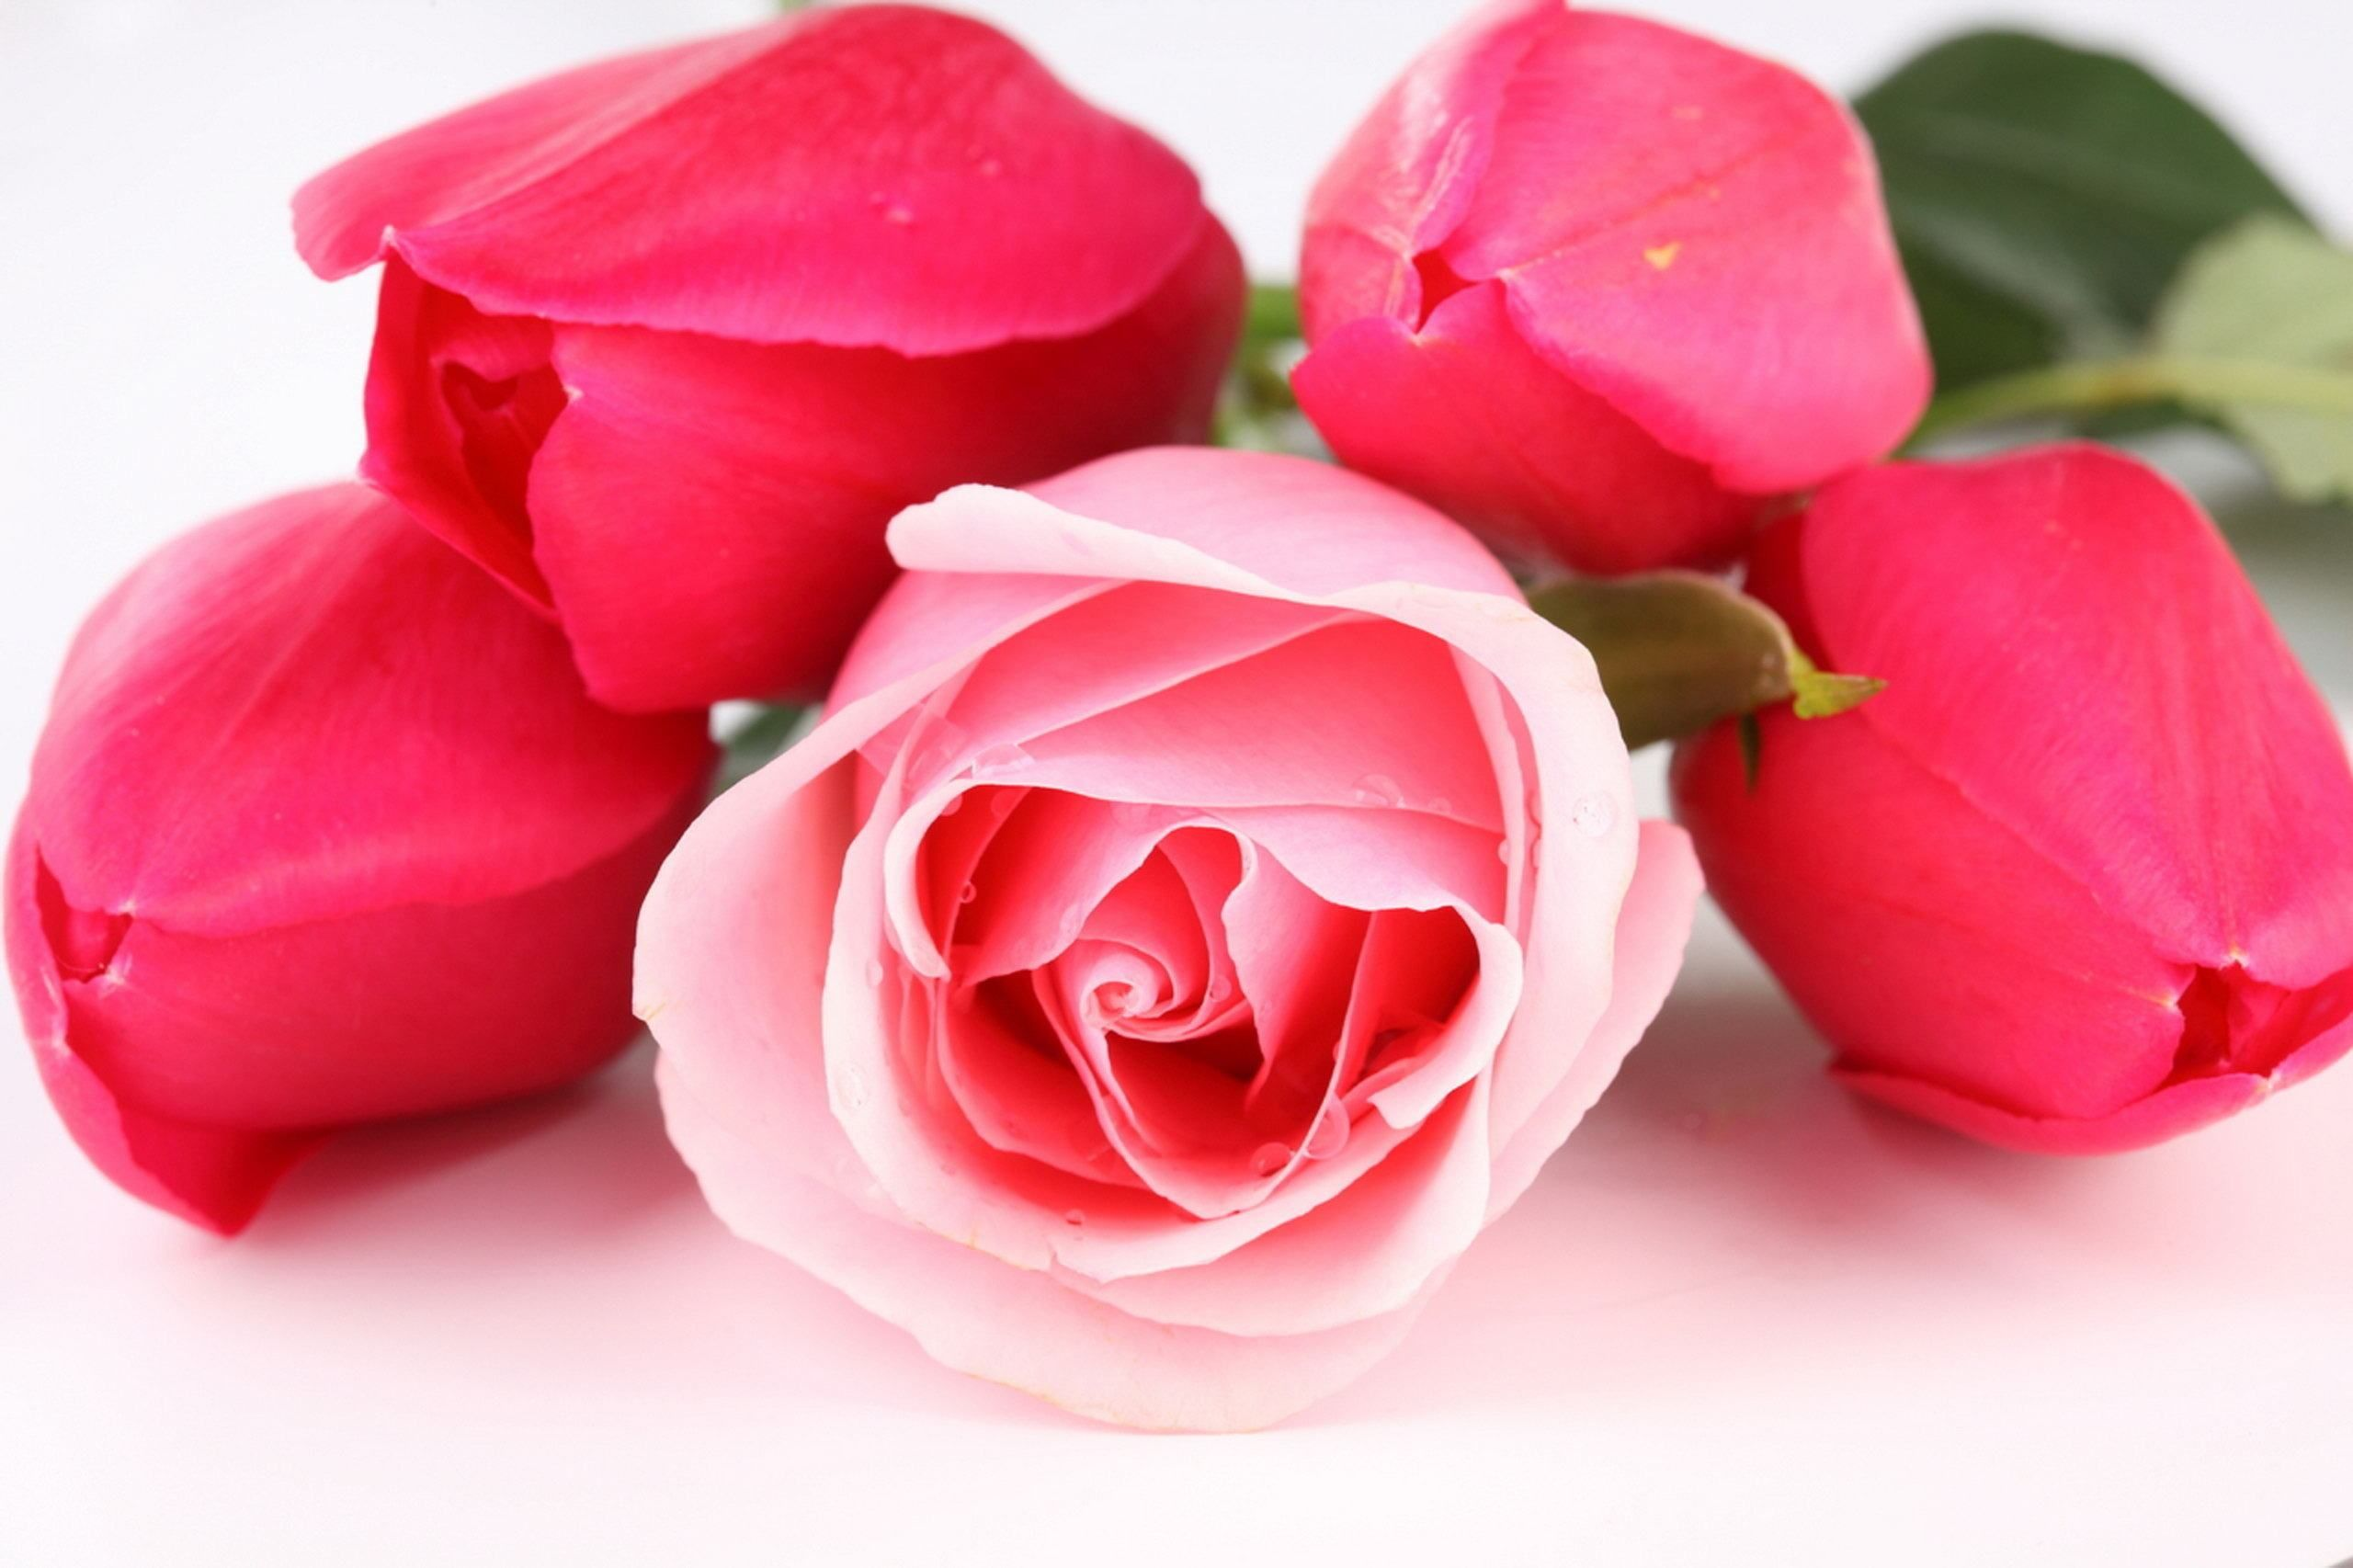 Rose Flowers Wallpapers For Desktop Hd Images 3 Hd Wallpapers Pink Rose Pictures Beautiful Pink Roses Good Morning Roses